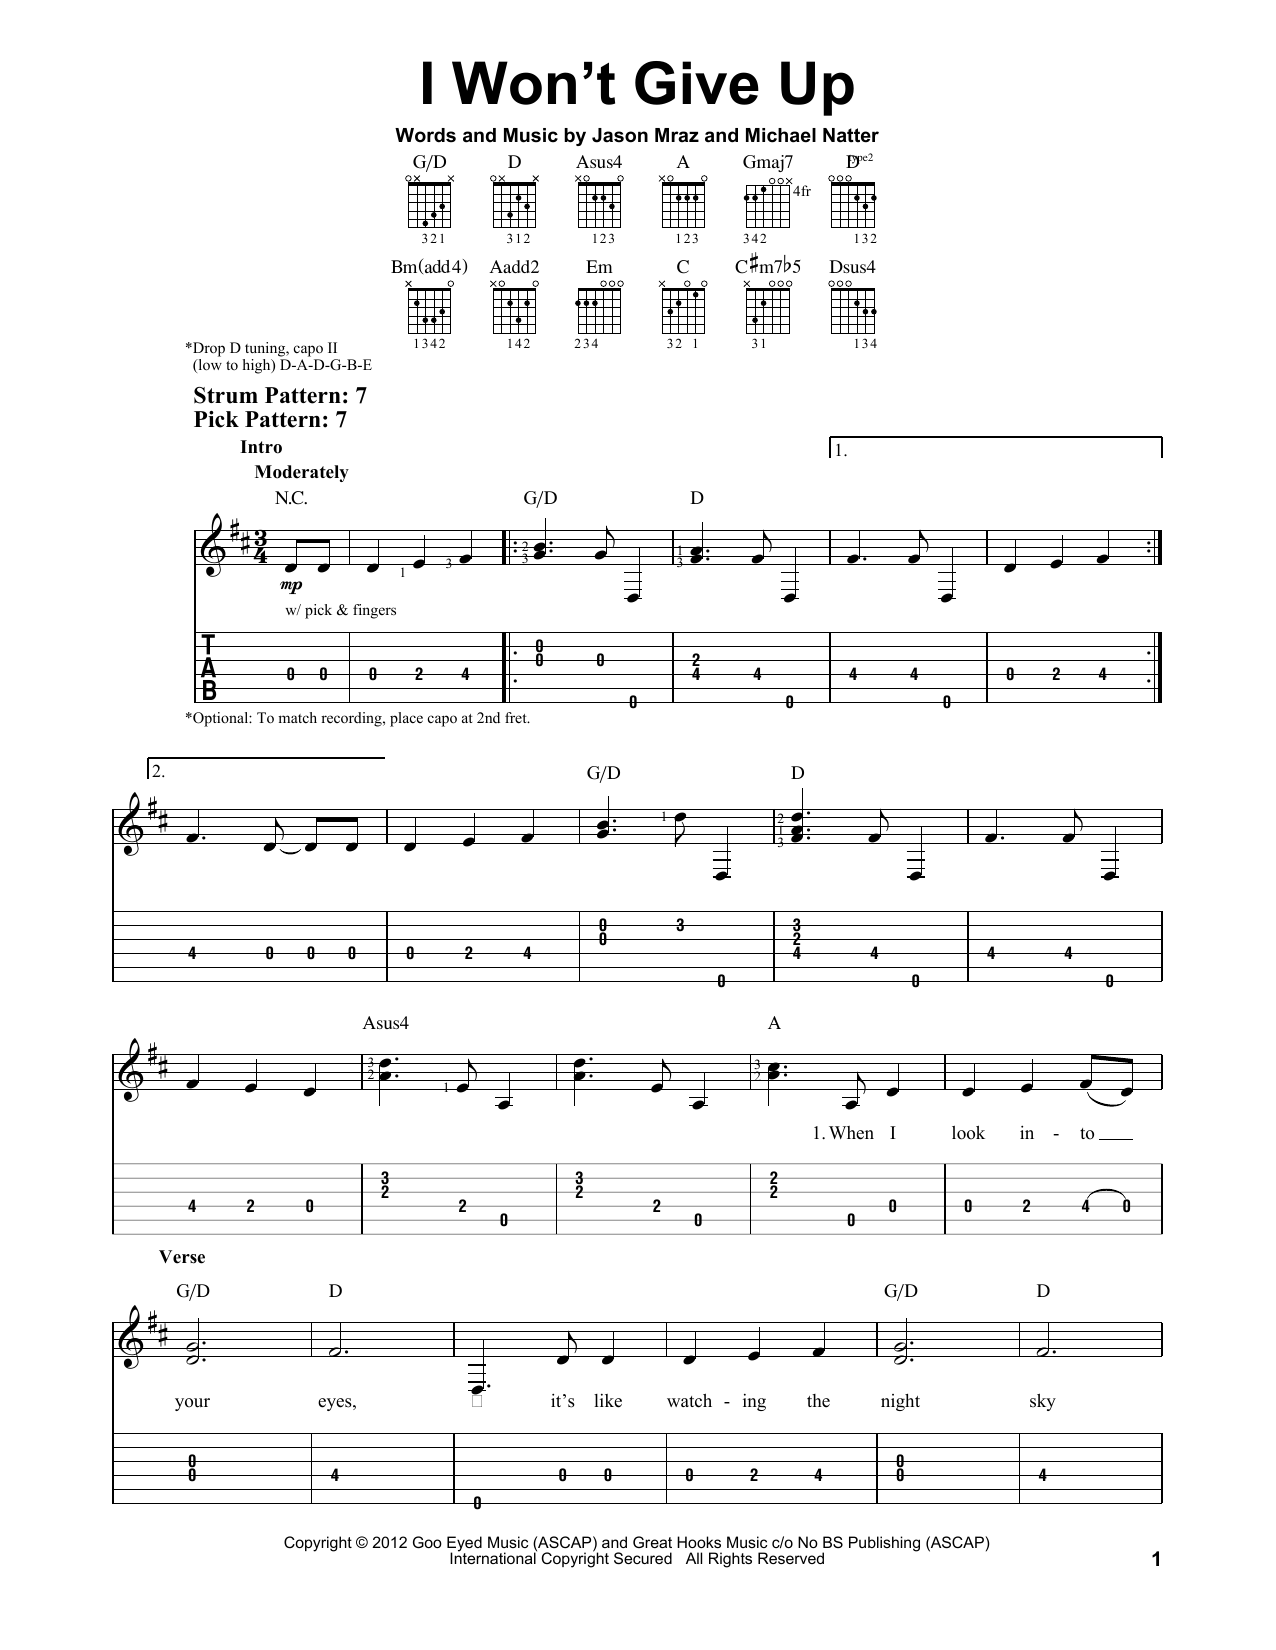 Ukulele ukulele tabs jason mraz : Sheet Music Digital Files To Print - Licensed Michael Natter ...